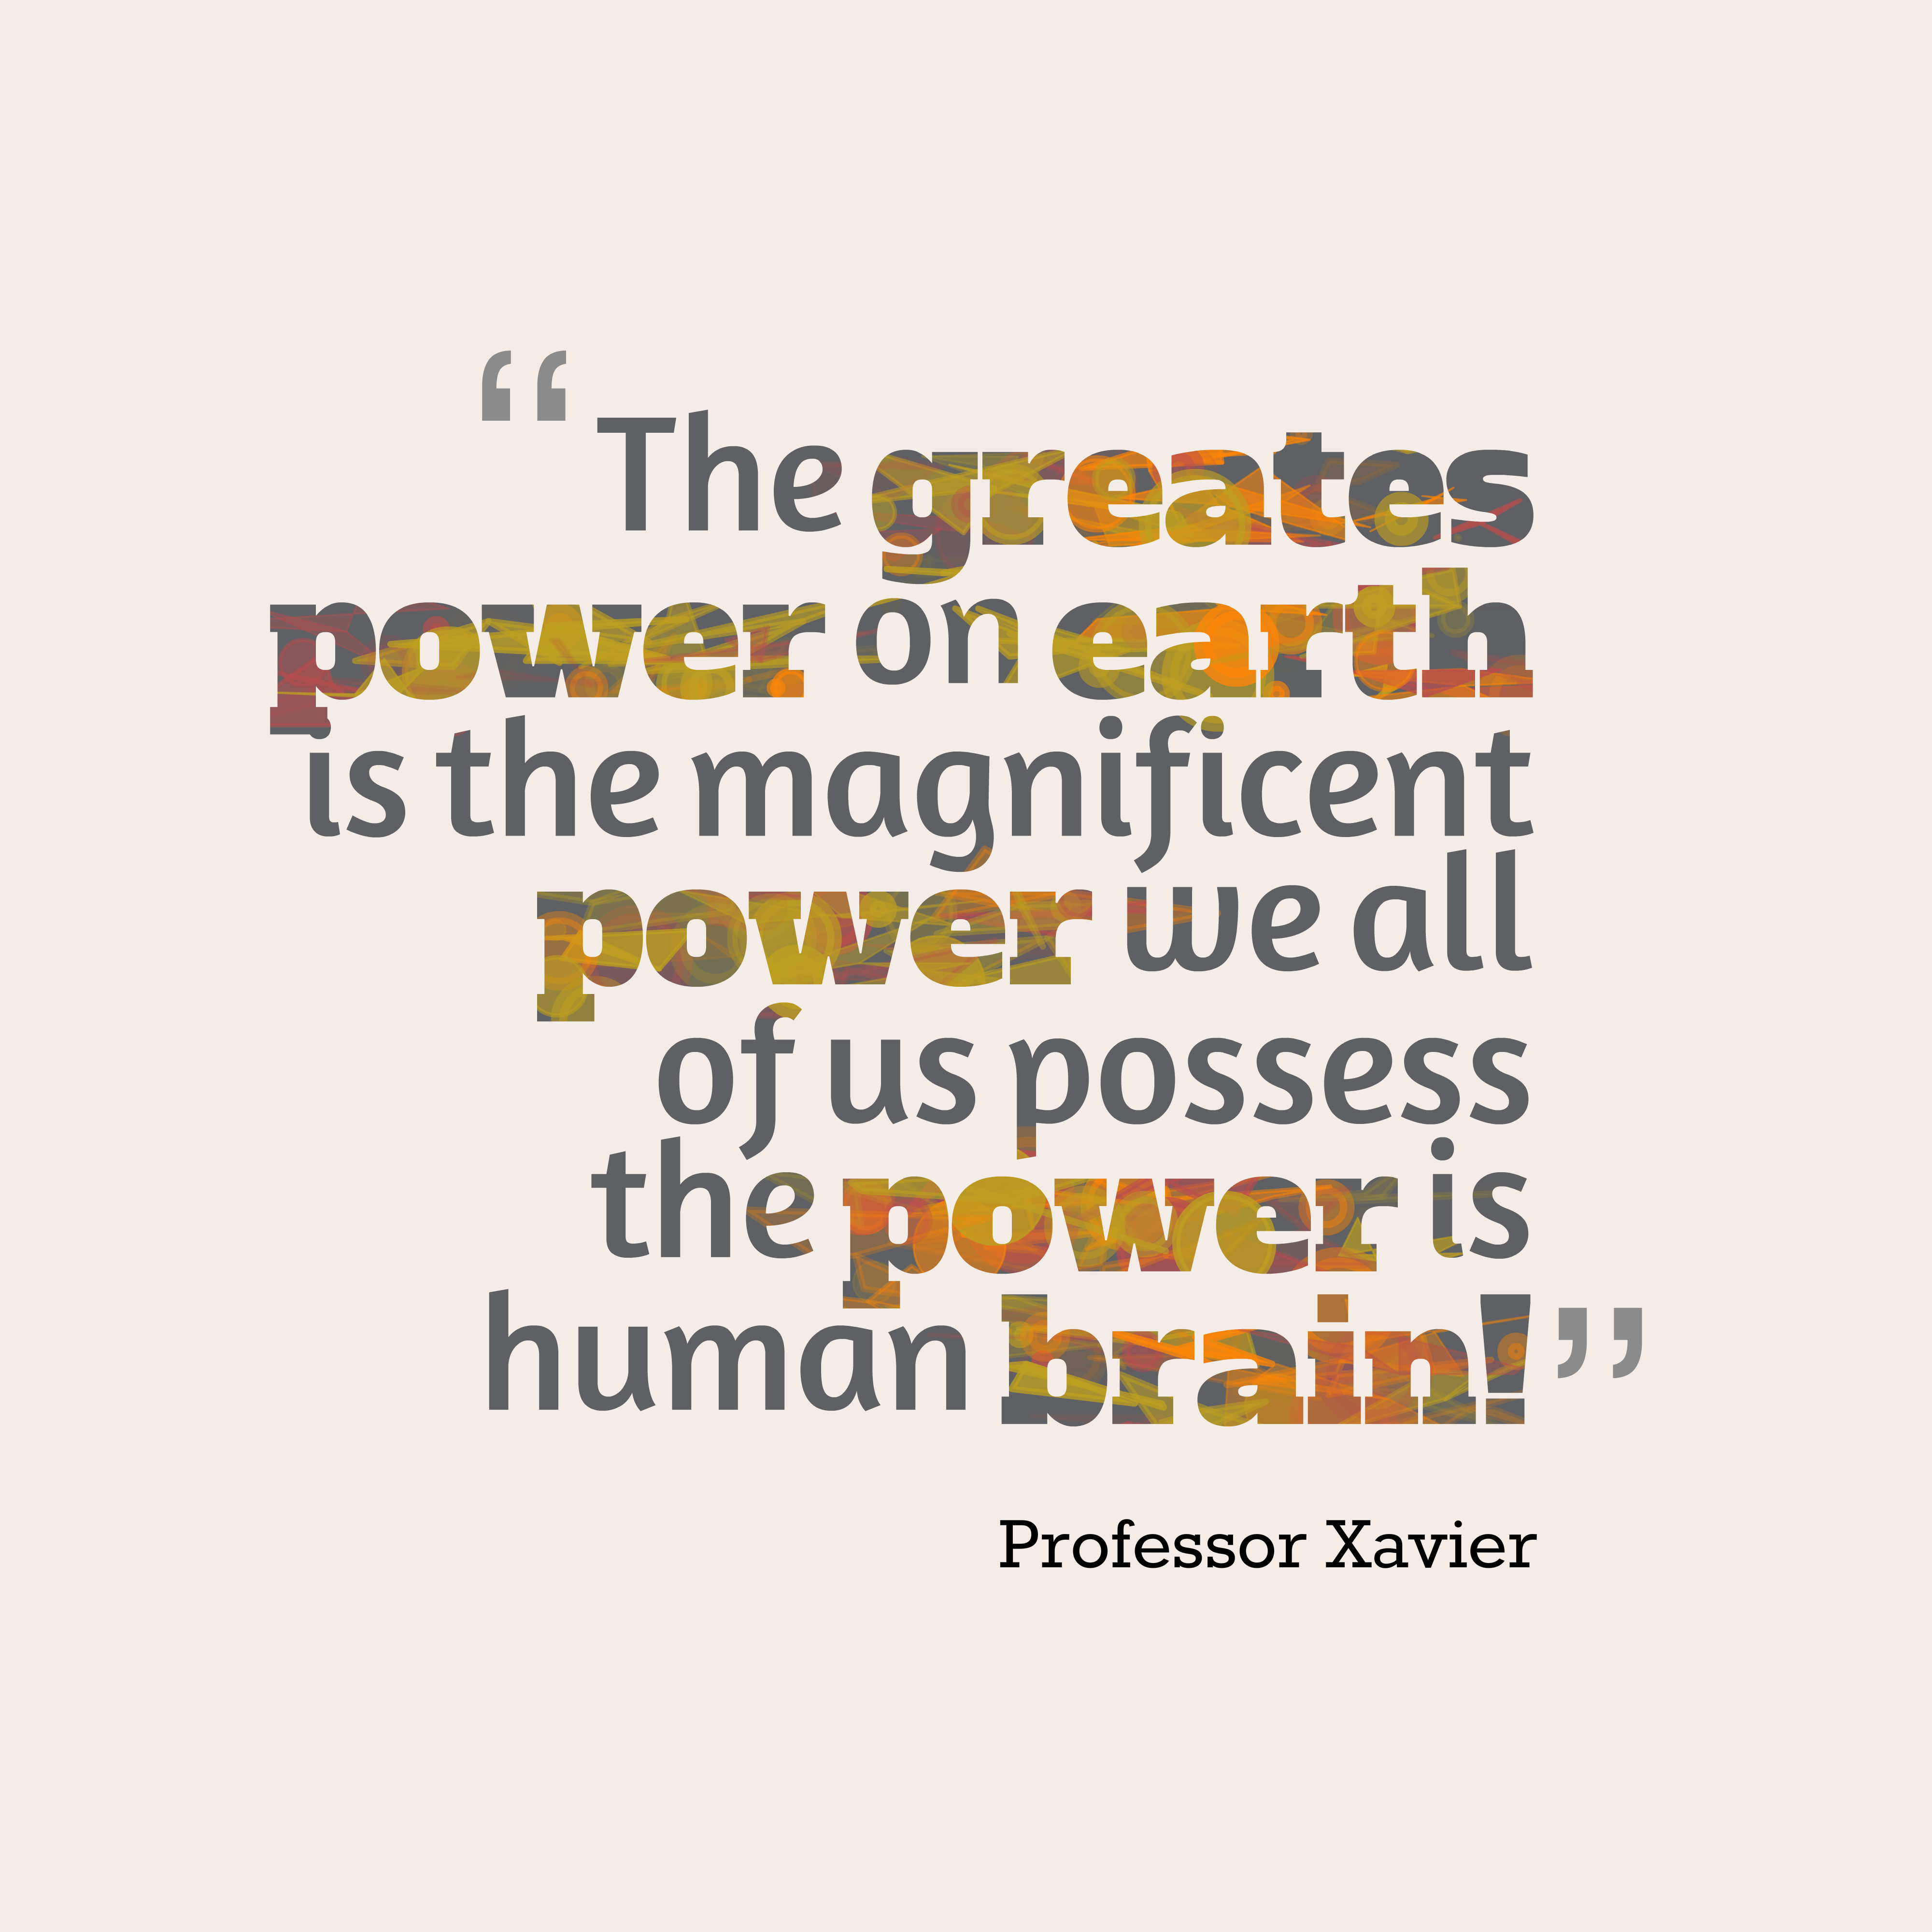 Quotes image of The greates power on earth is the magnificent power we all of us possess… the power is human brain!